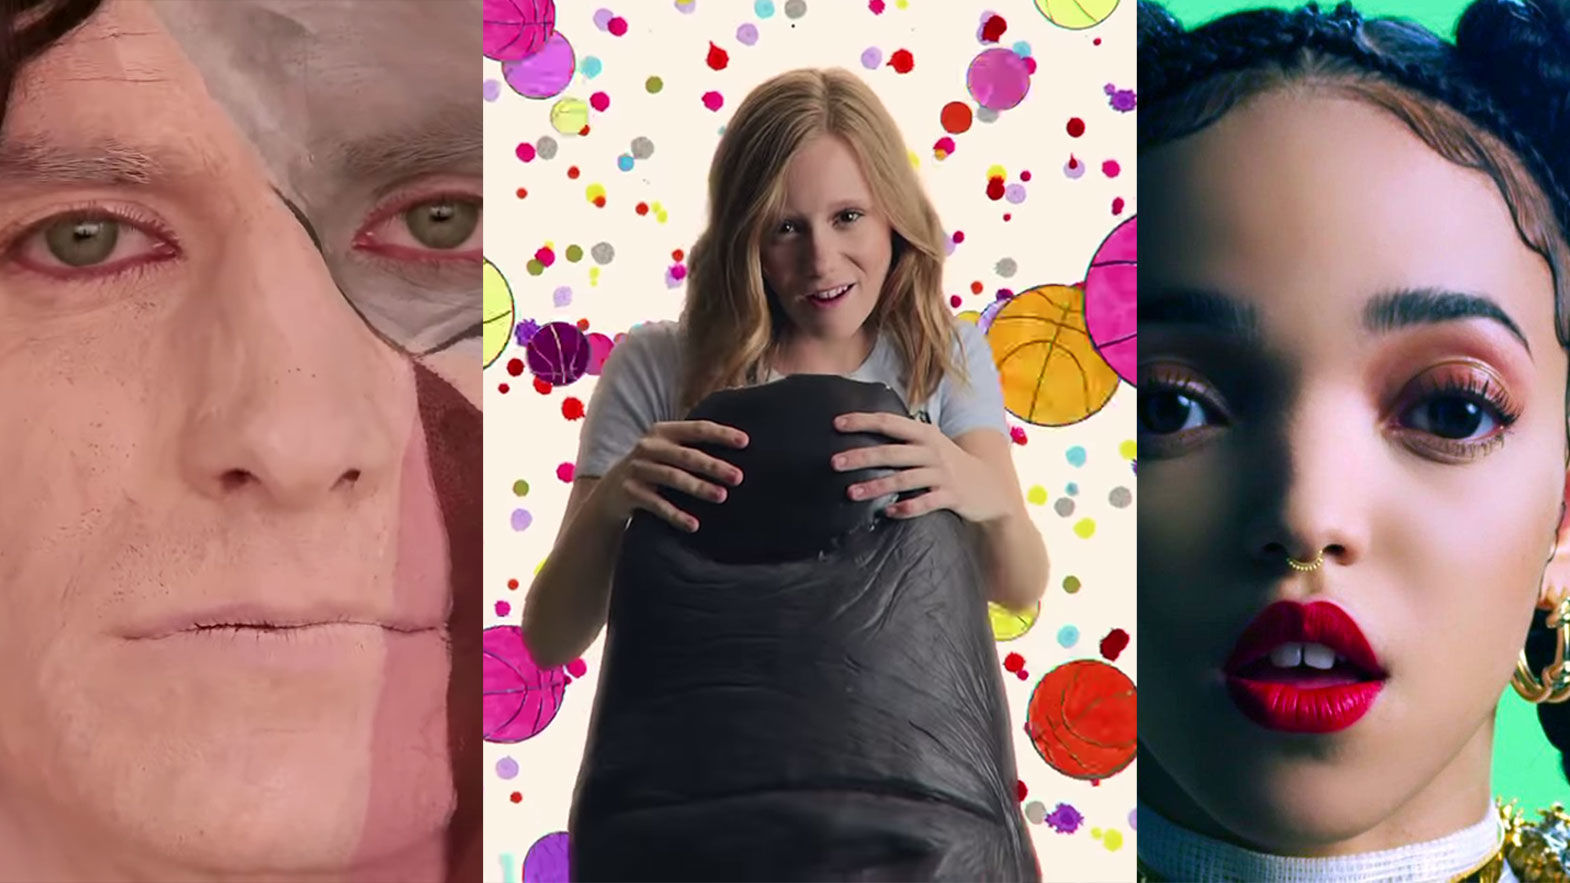 The Best Music Videos Of The 2010s Visual Delights That Defined A Decade Features Digital Arts